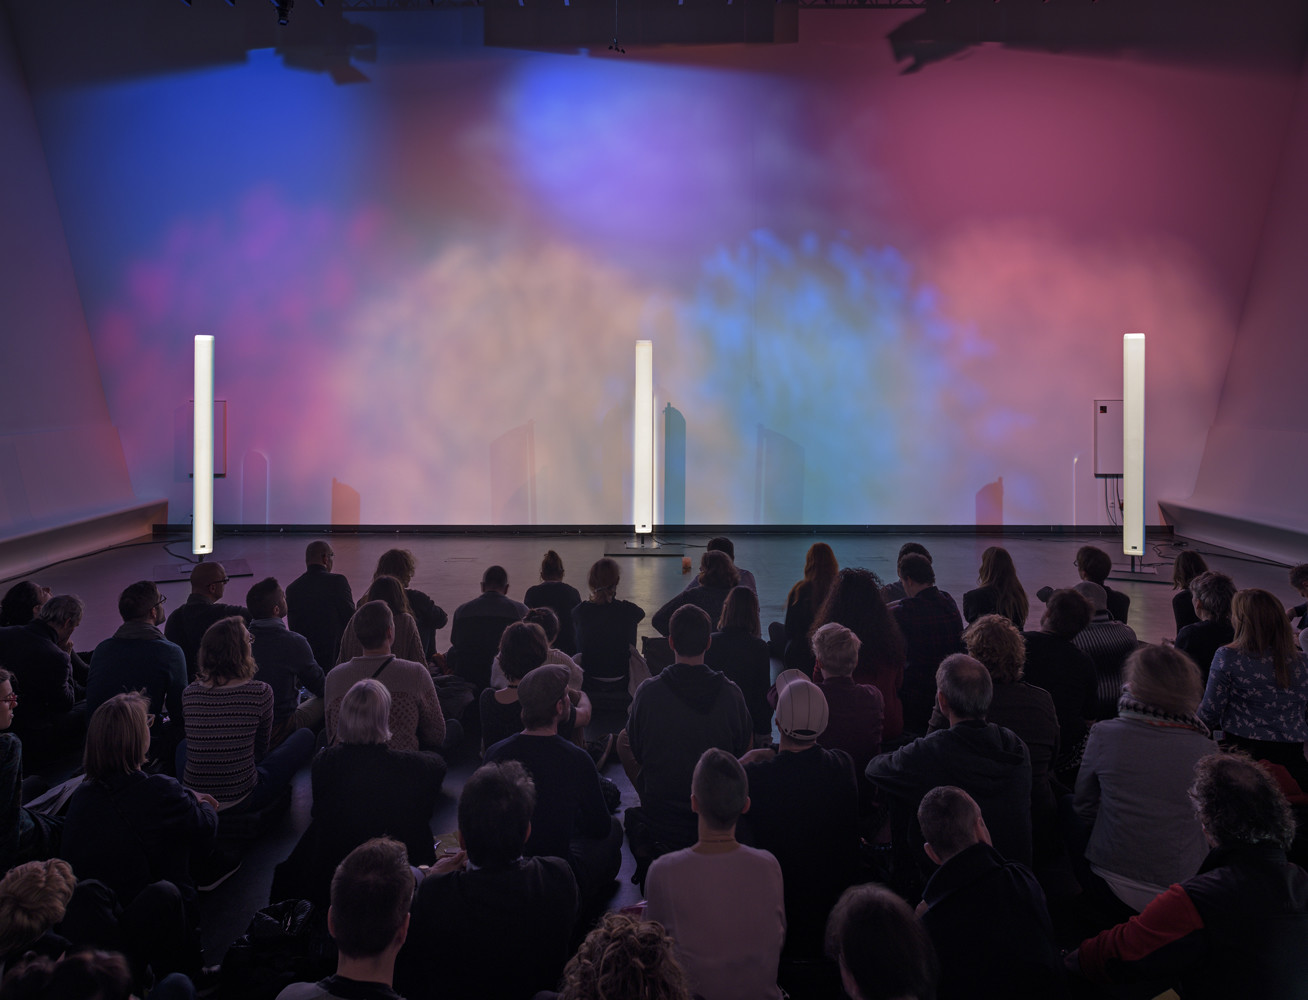 <p>Installation view, Florian Hecker, <em>A Script For Machine Synthesis</em>, Stedlijk Museum, Amsterdam, 28 February 2015</p>